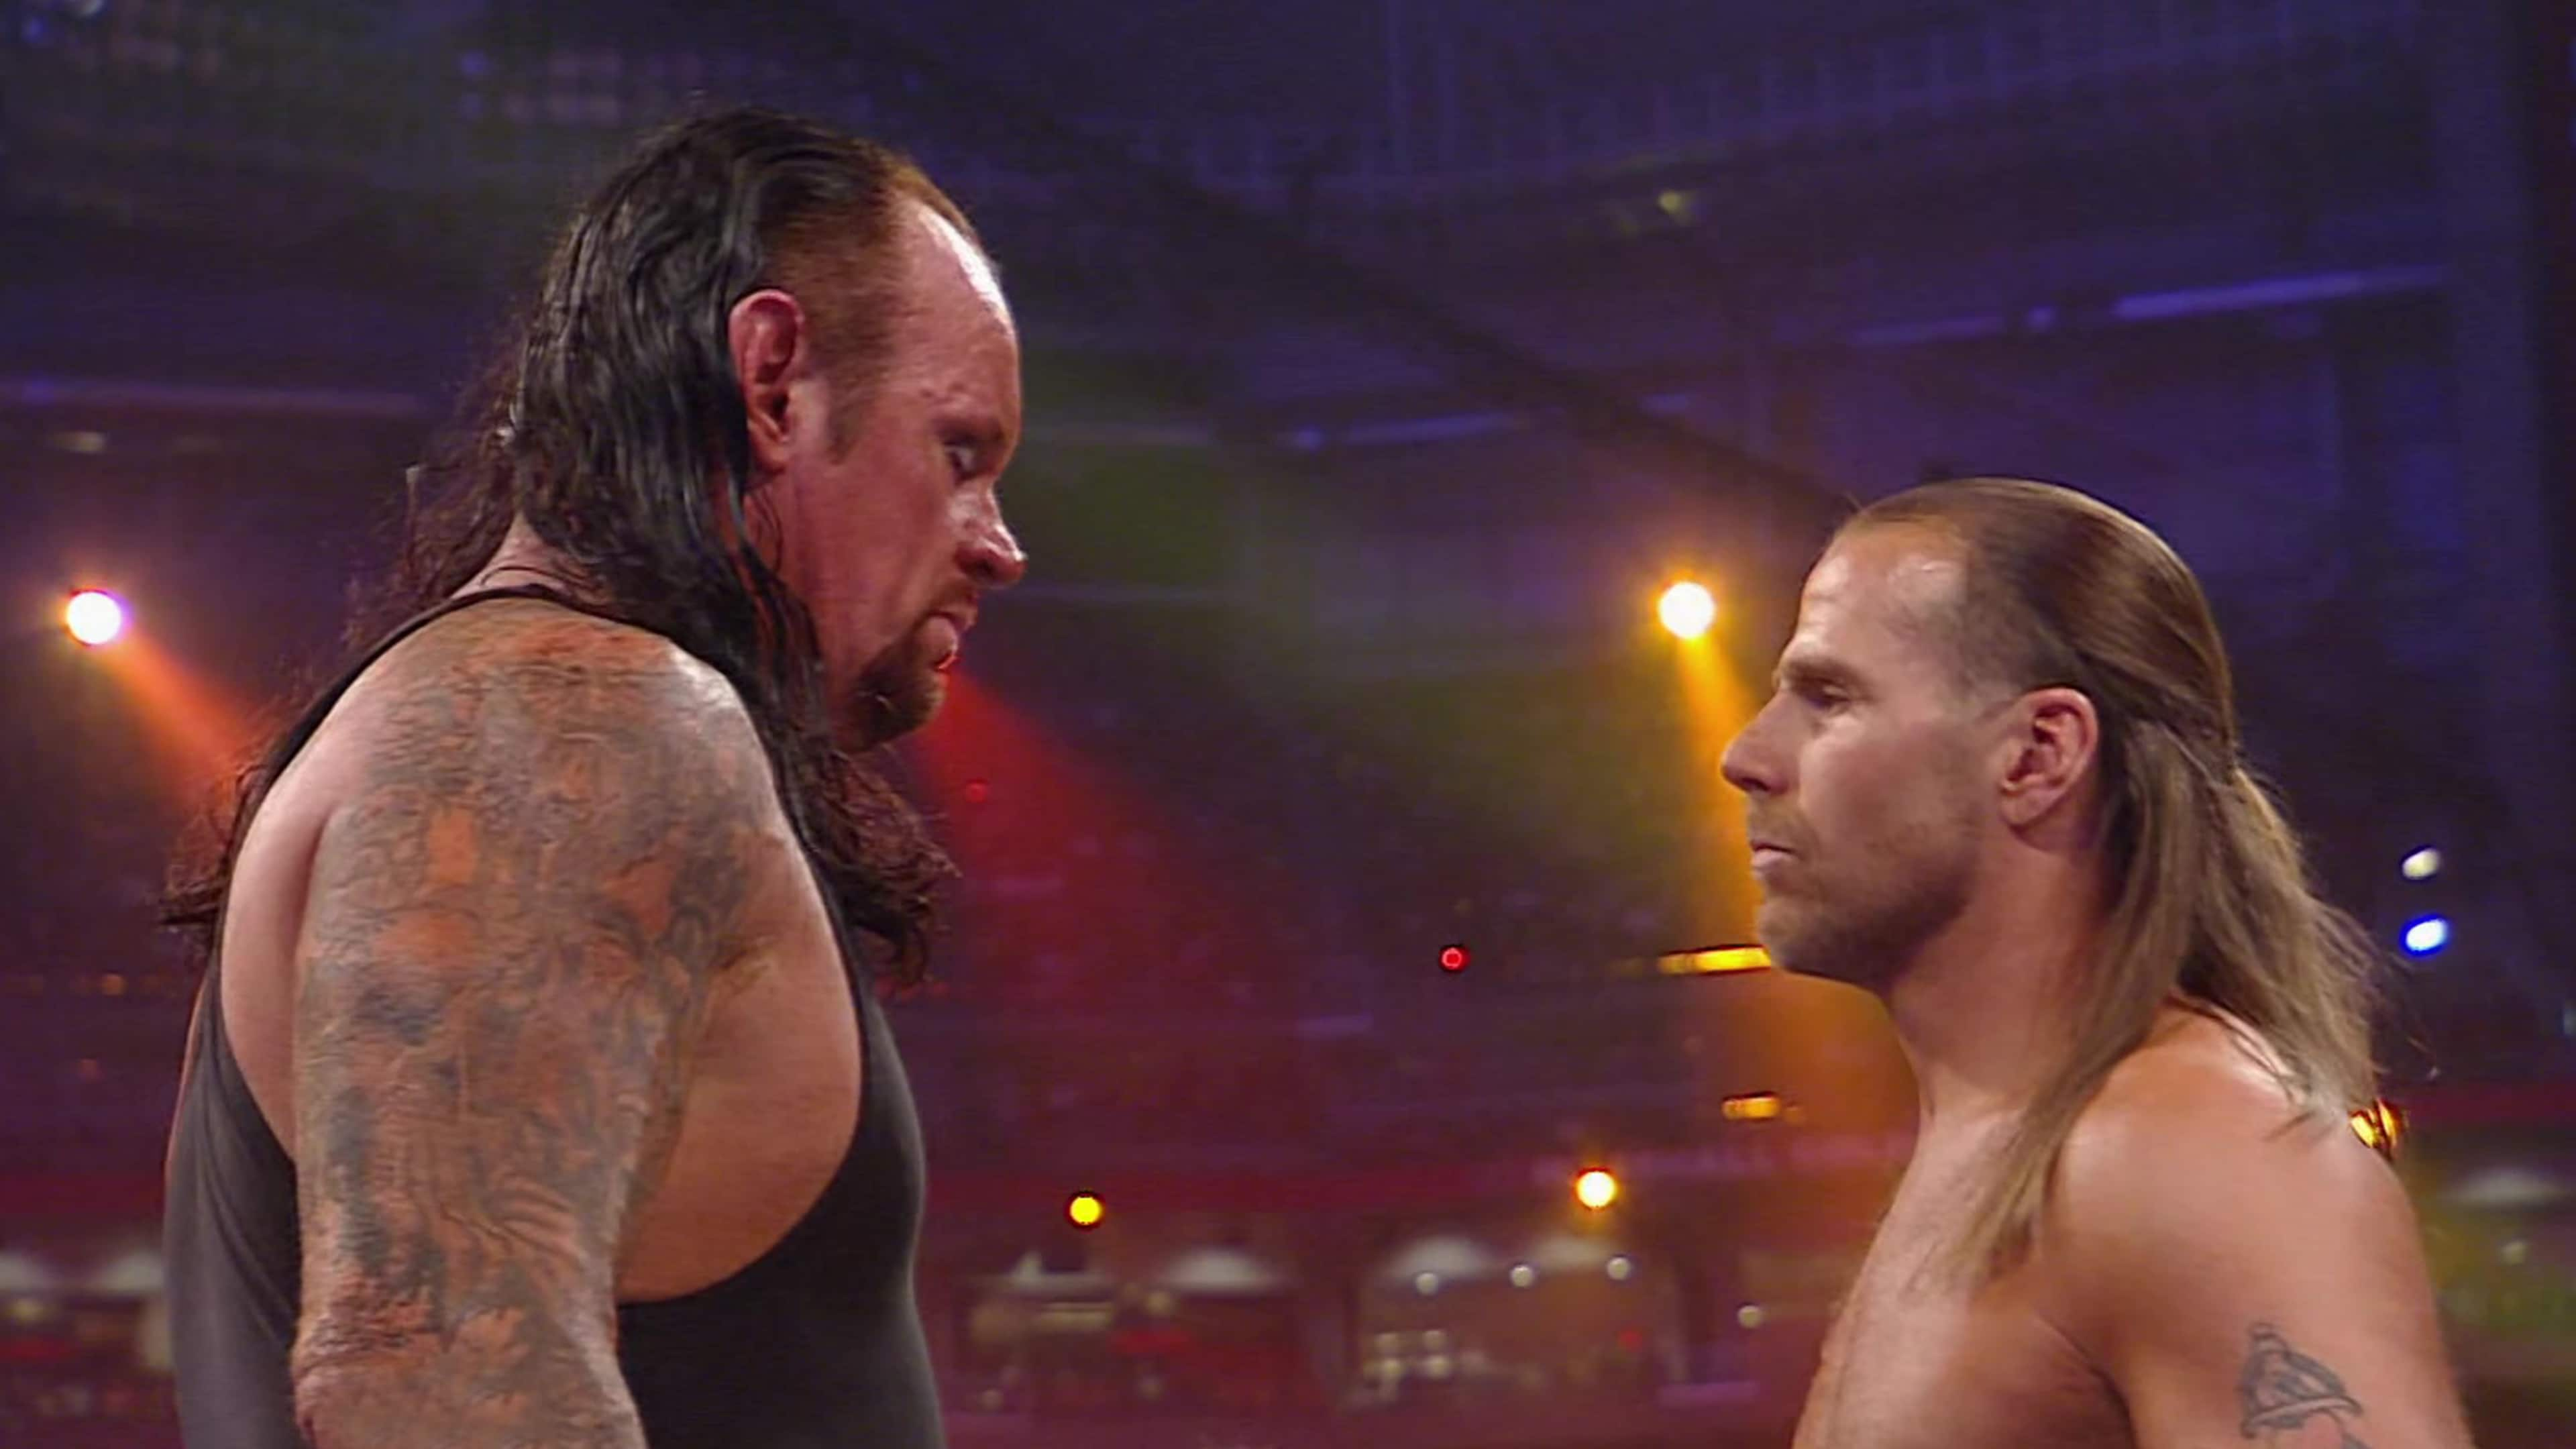 The Best of The Undertaker